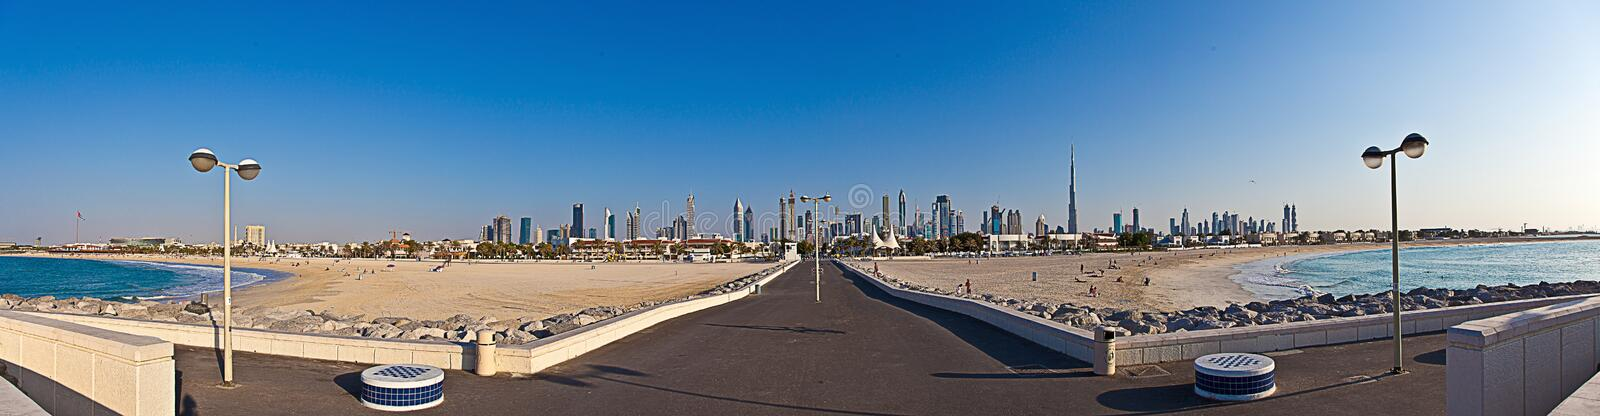 Panoramic picture of the Dubai skyline during daytime. In November 2014 stock images